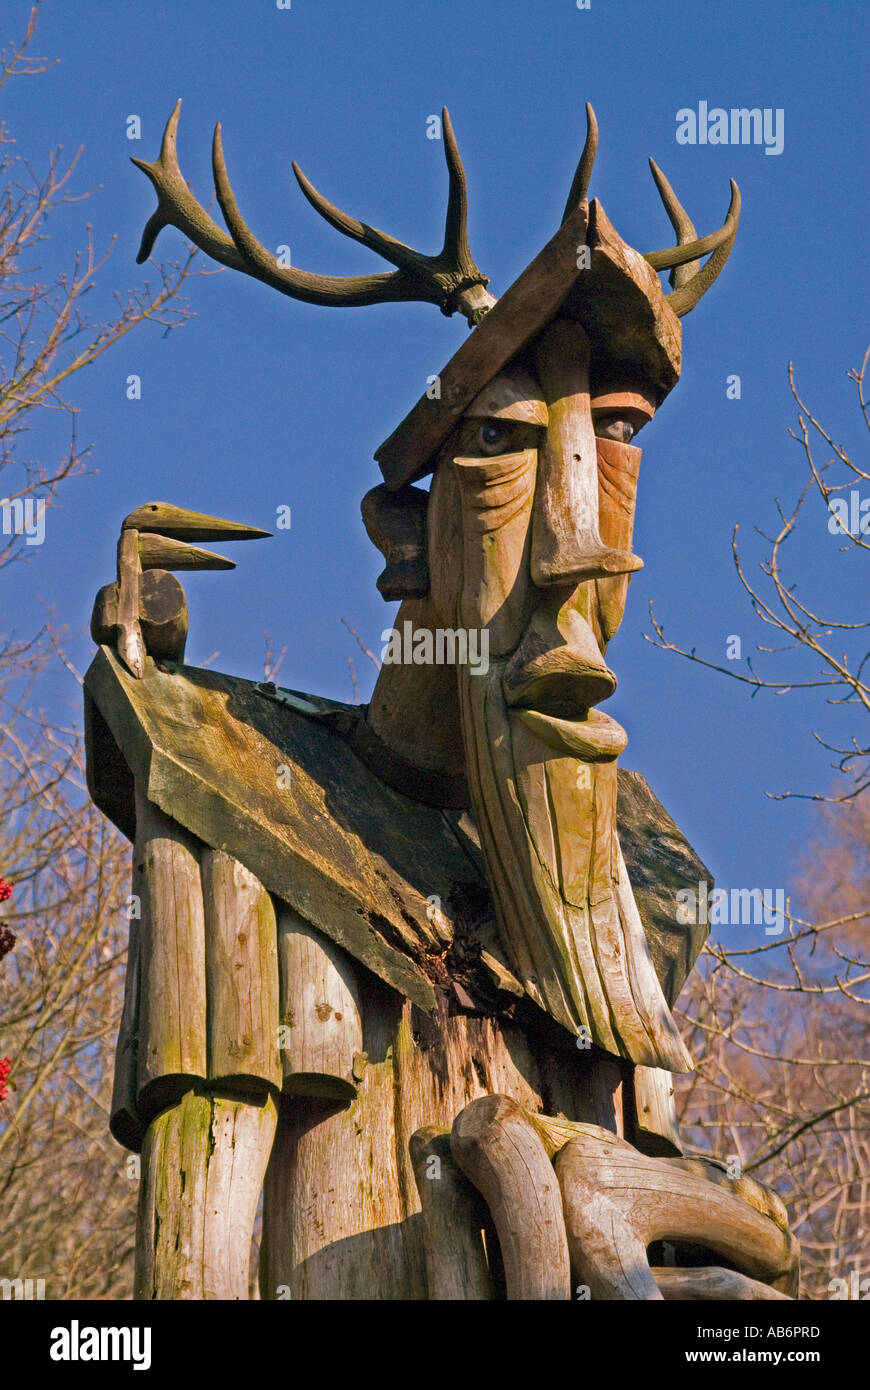 ancient-forester-ii-detail-outdoor-sculpture-by-david-kemp-grizedale-AB6PRD.jpg